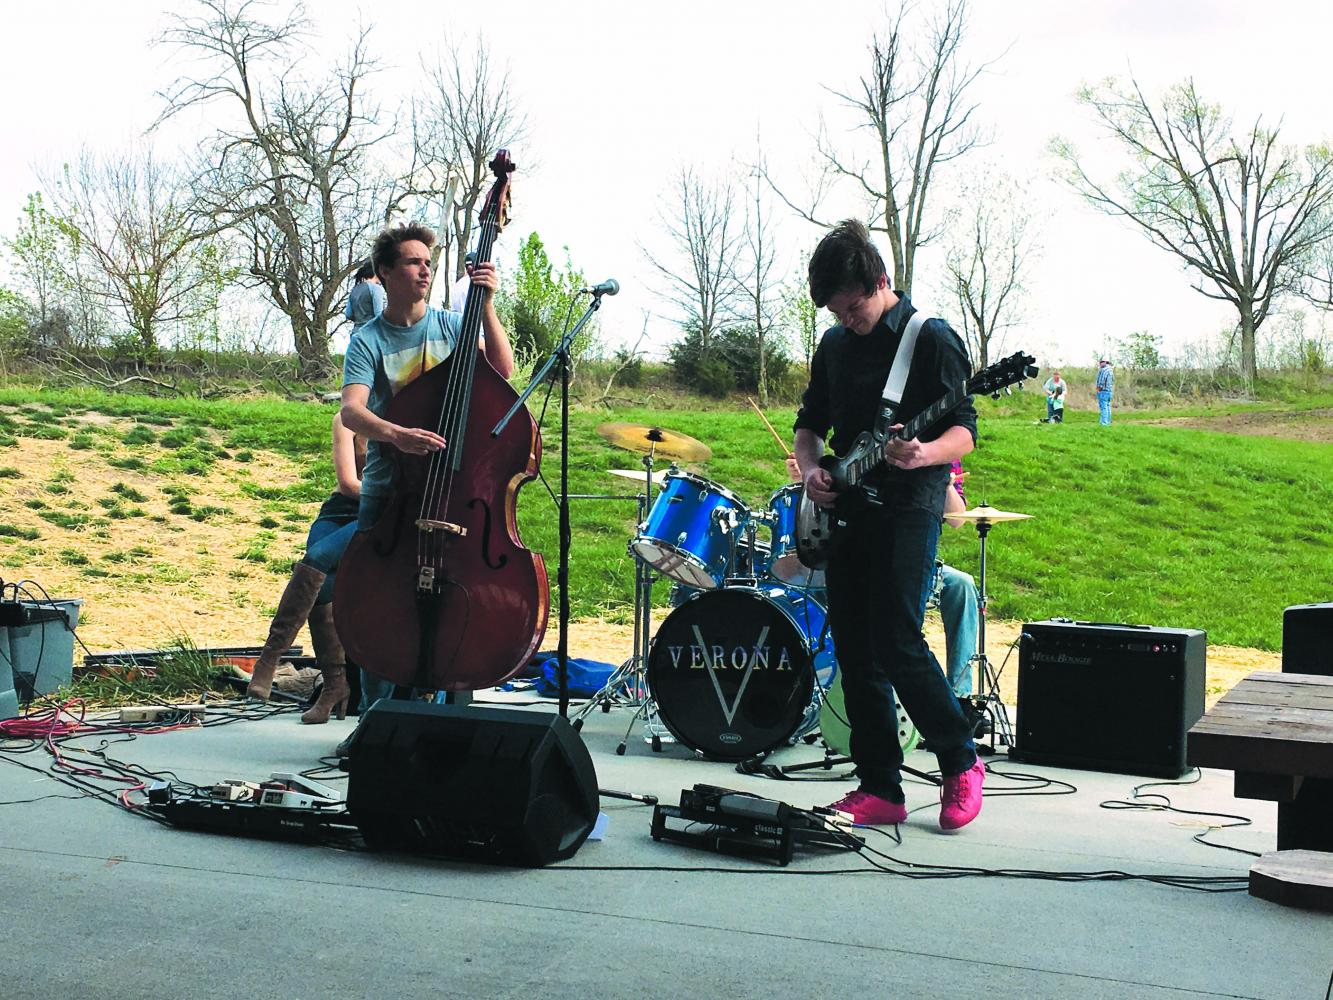 Verona performs at the Apple Blossom Festival April 9.